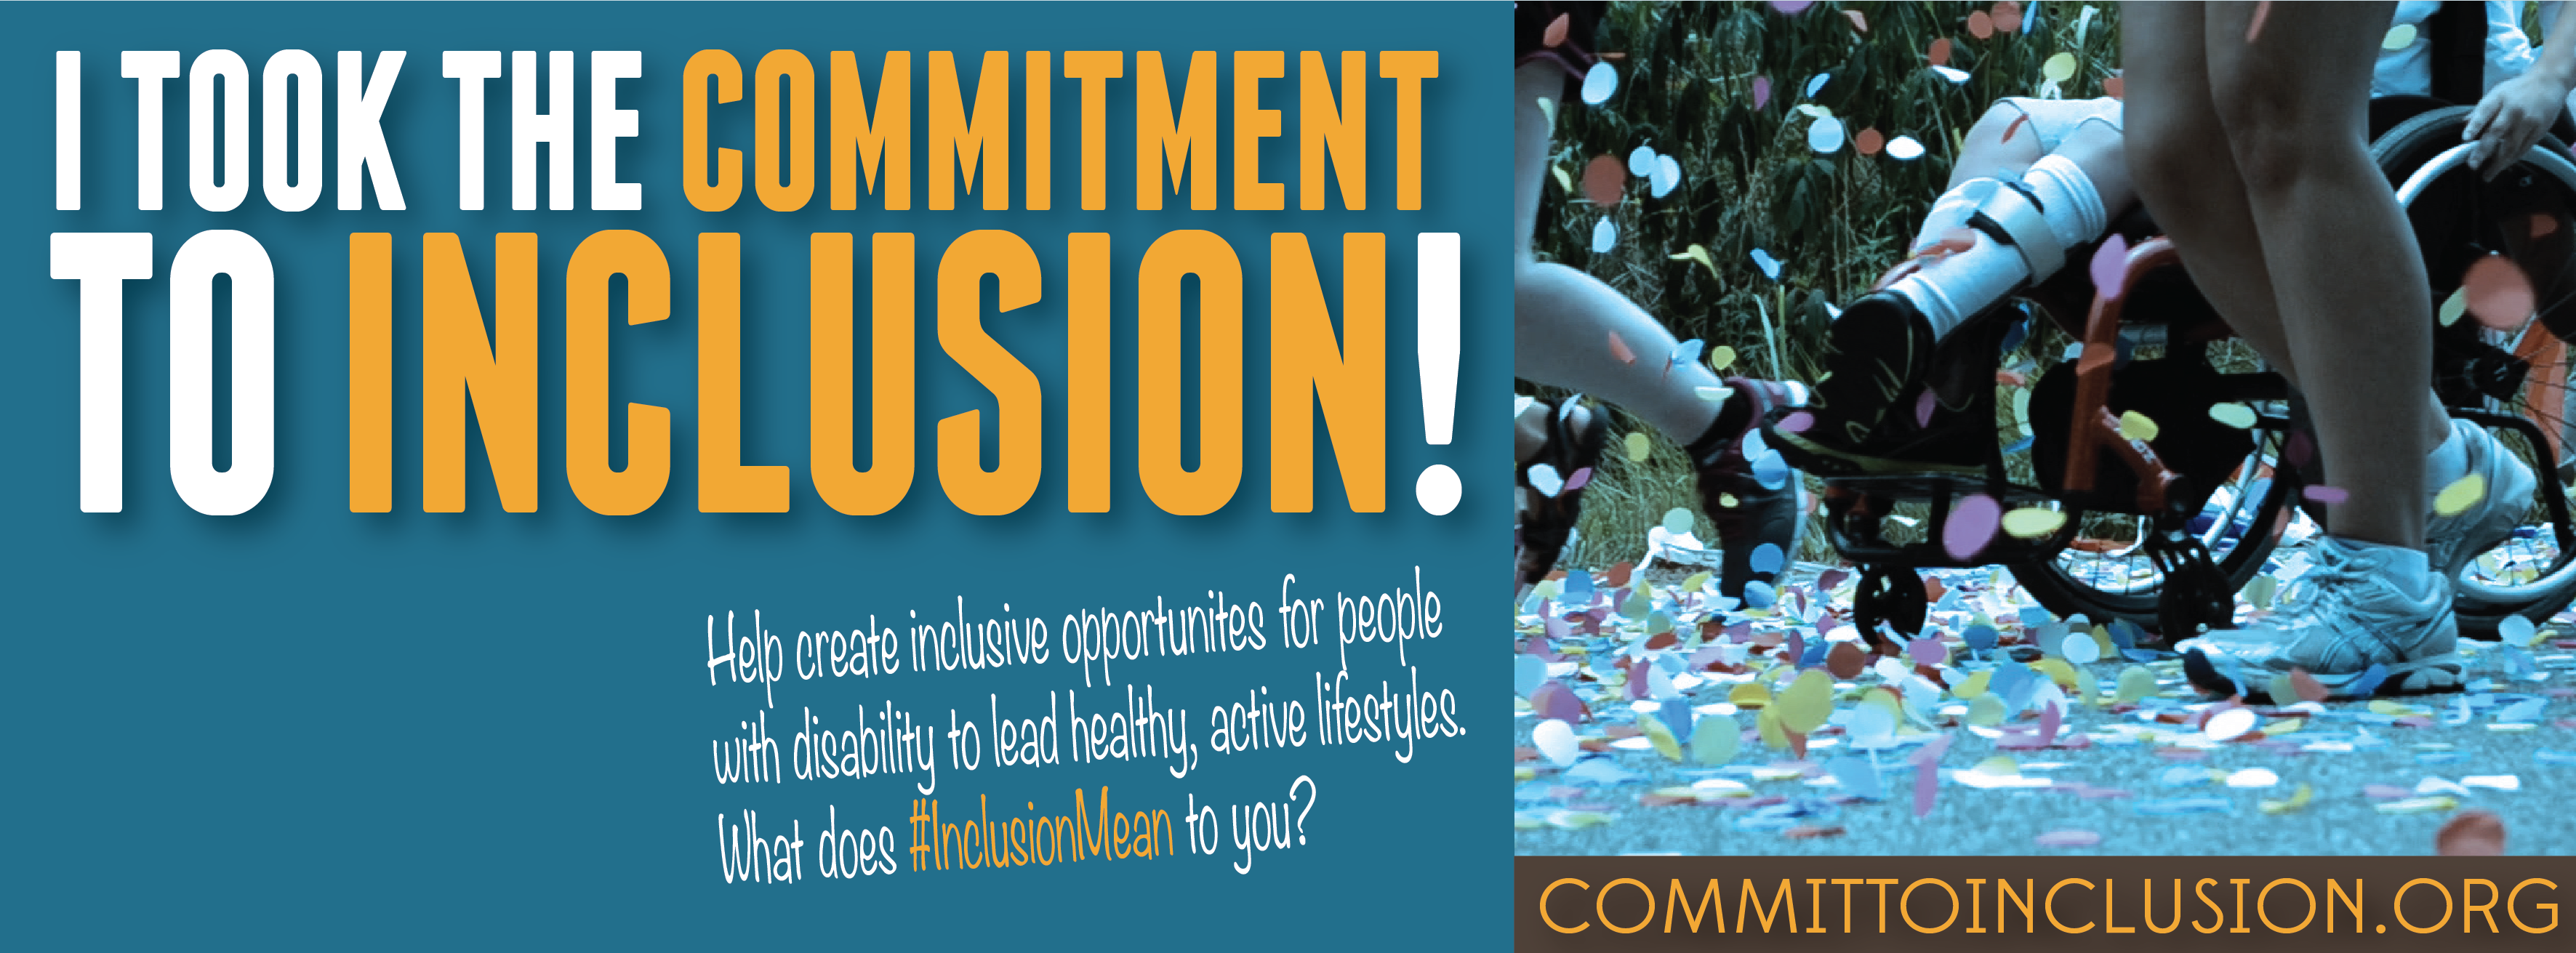 Make the Commitment at committoinclusion.org.